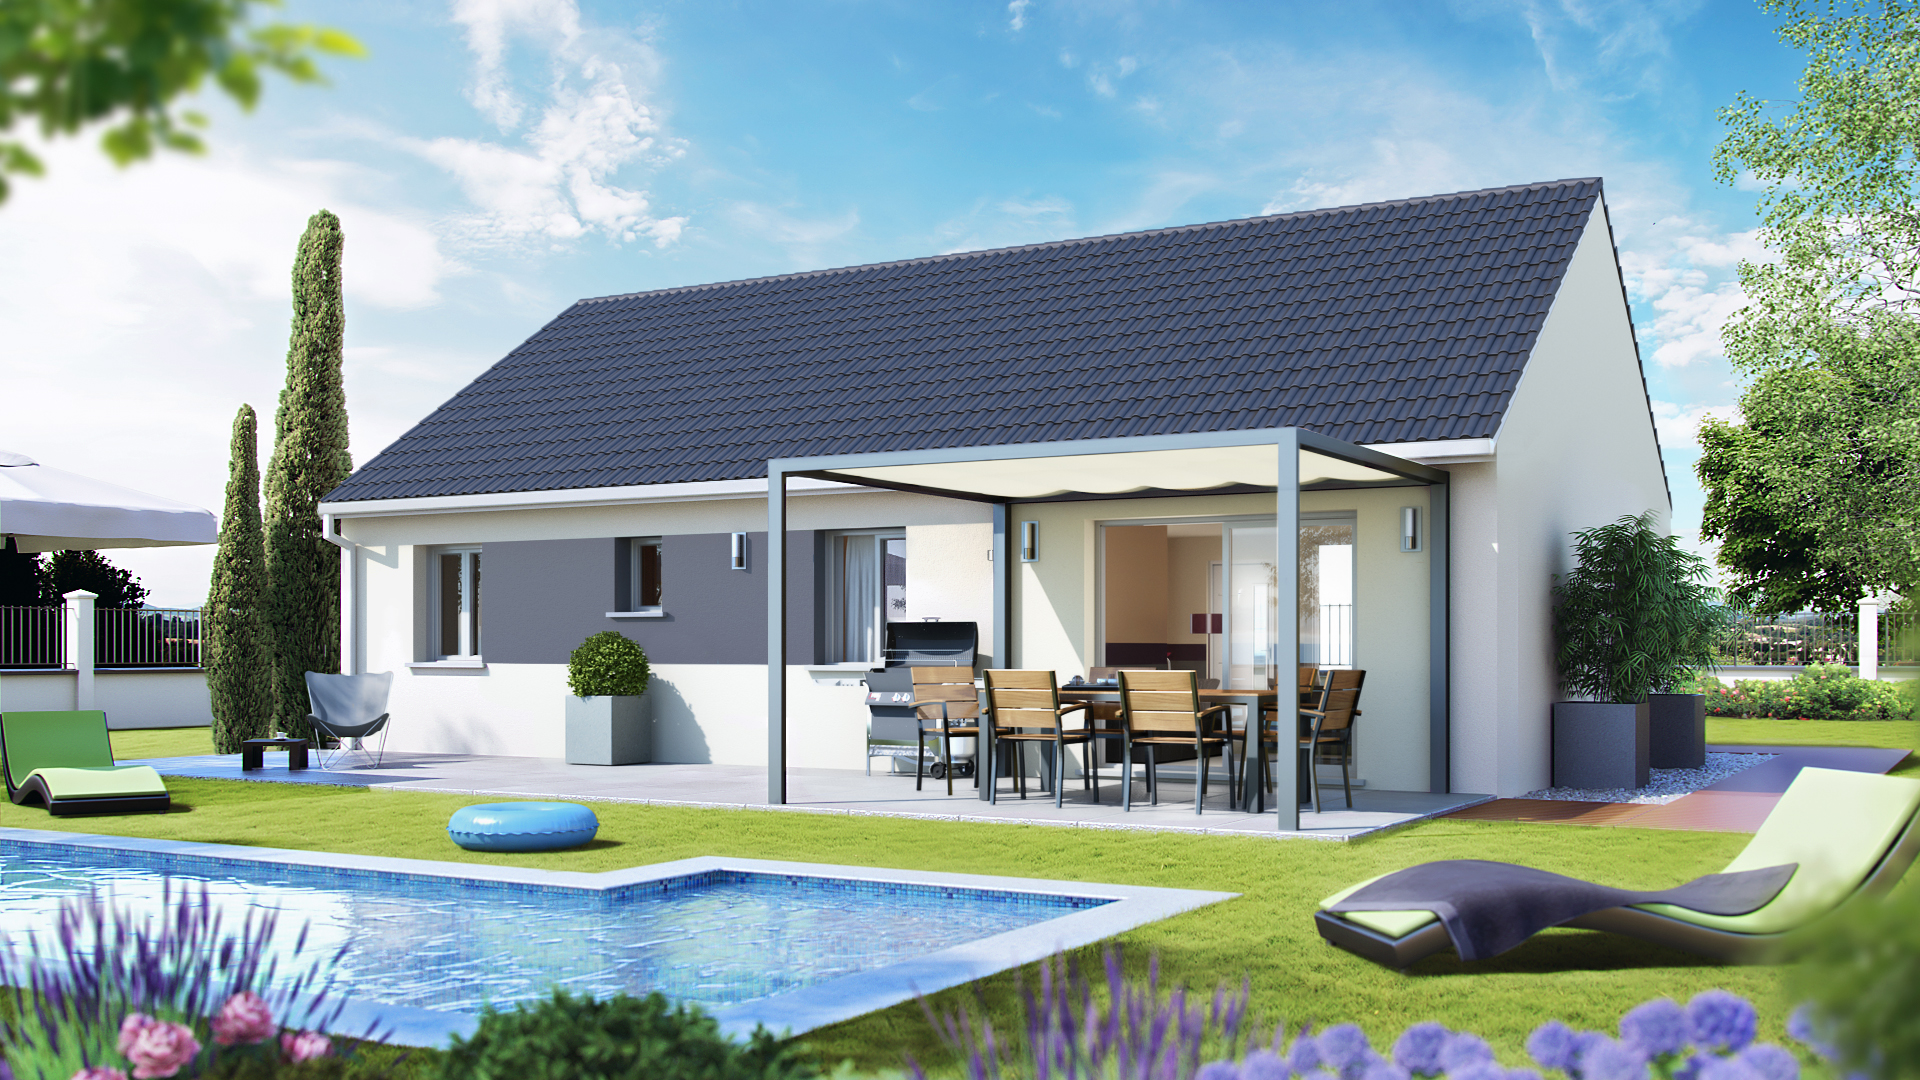 Plan maison villa basse simple for Maison moderne simple